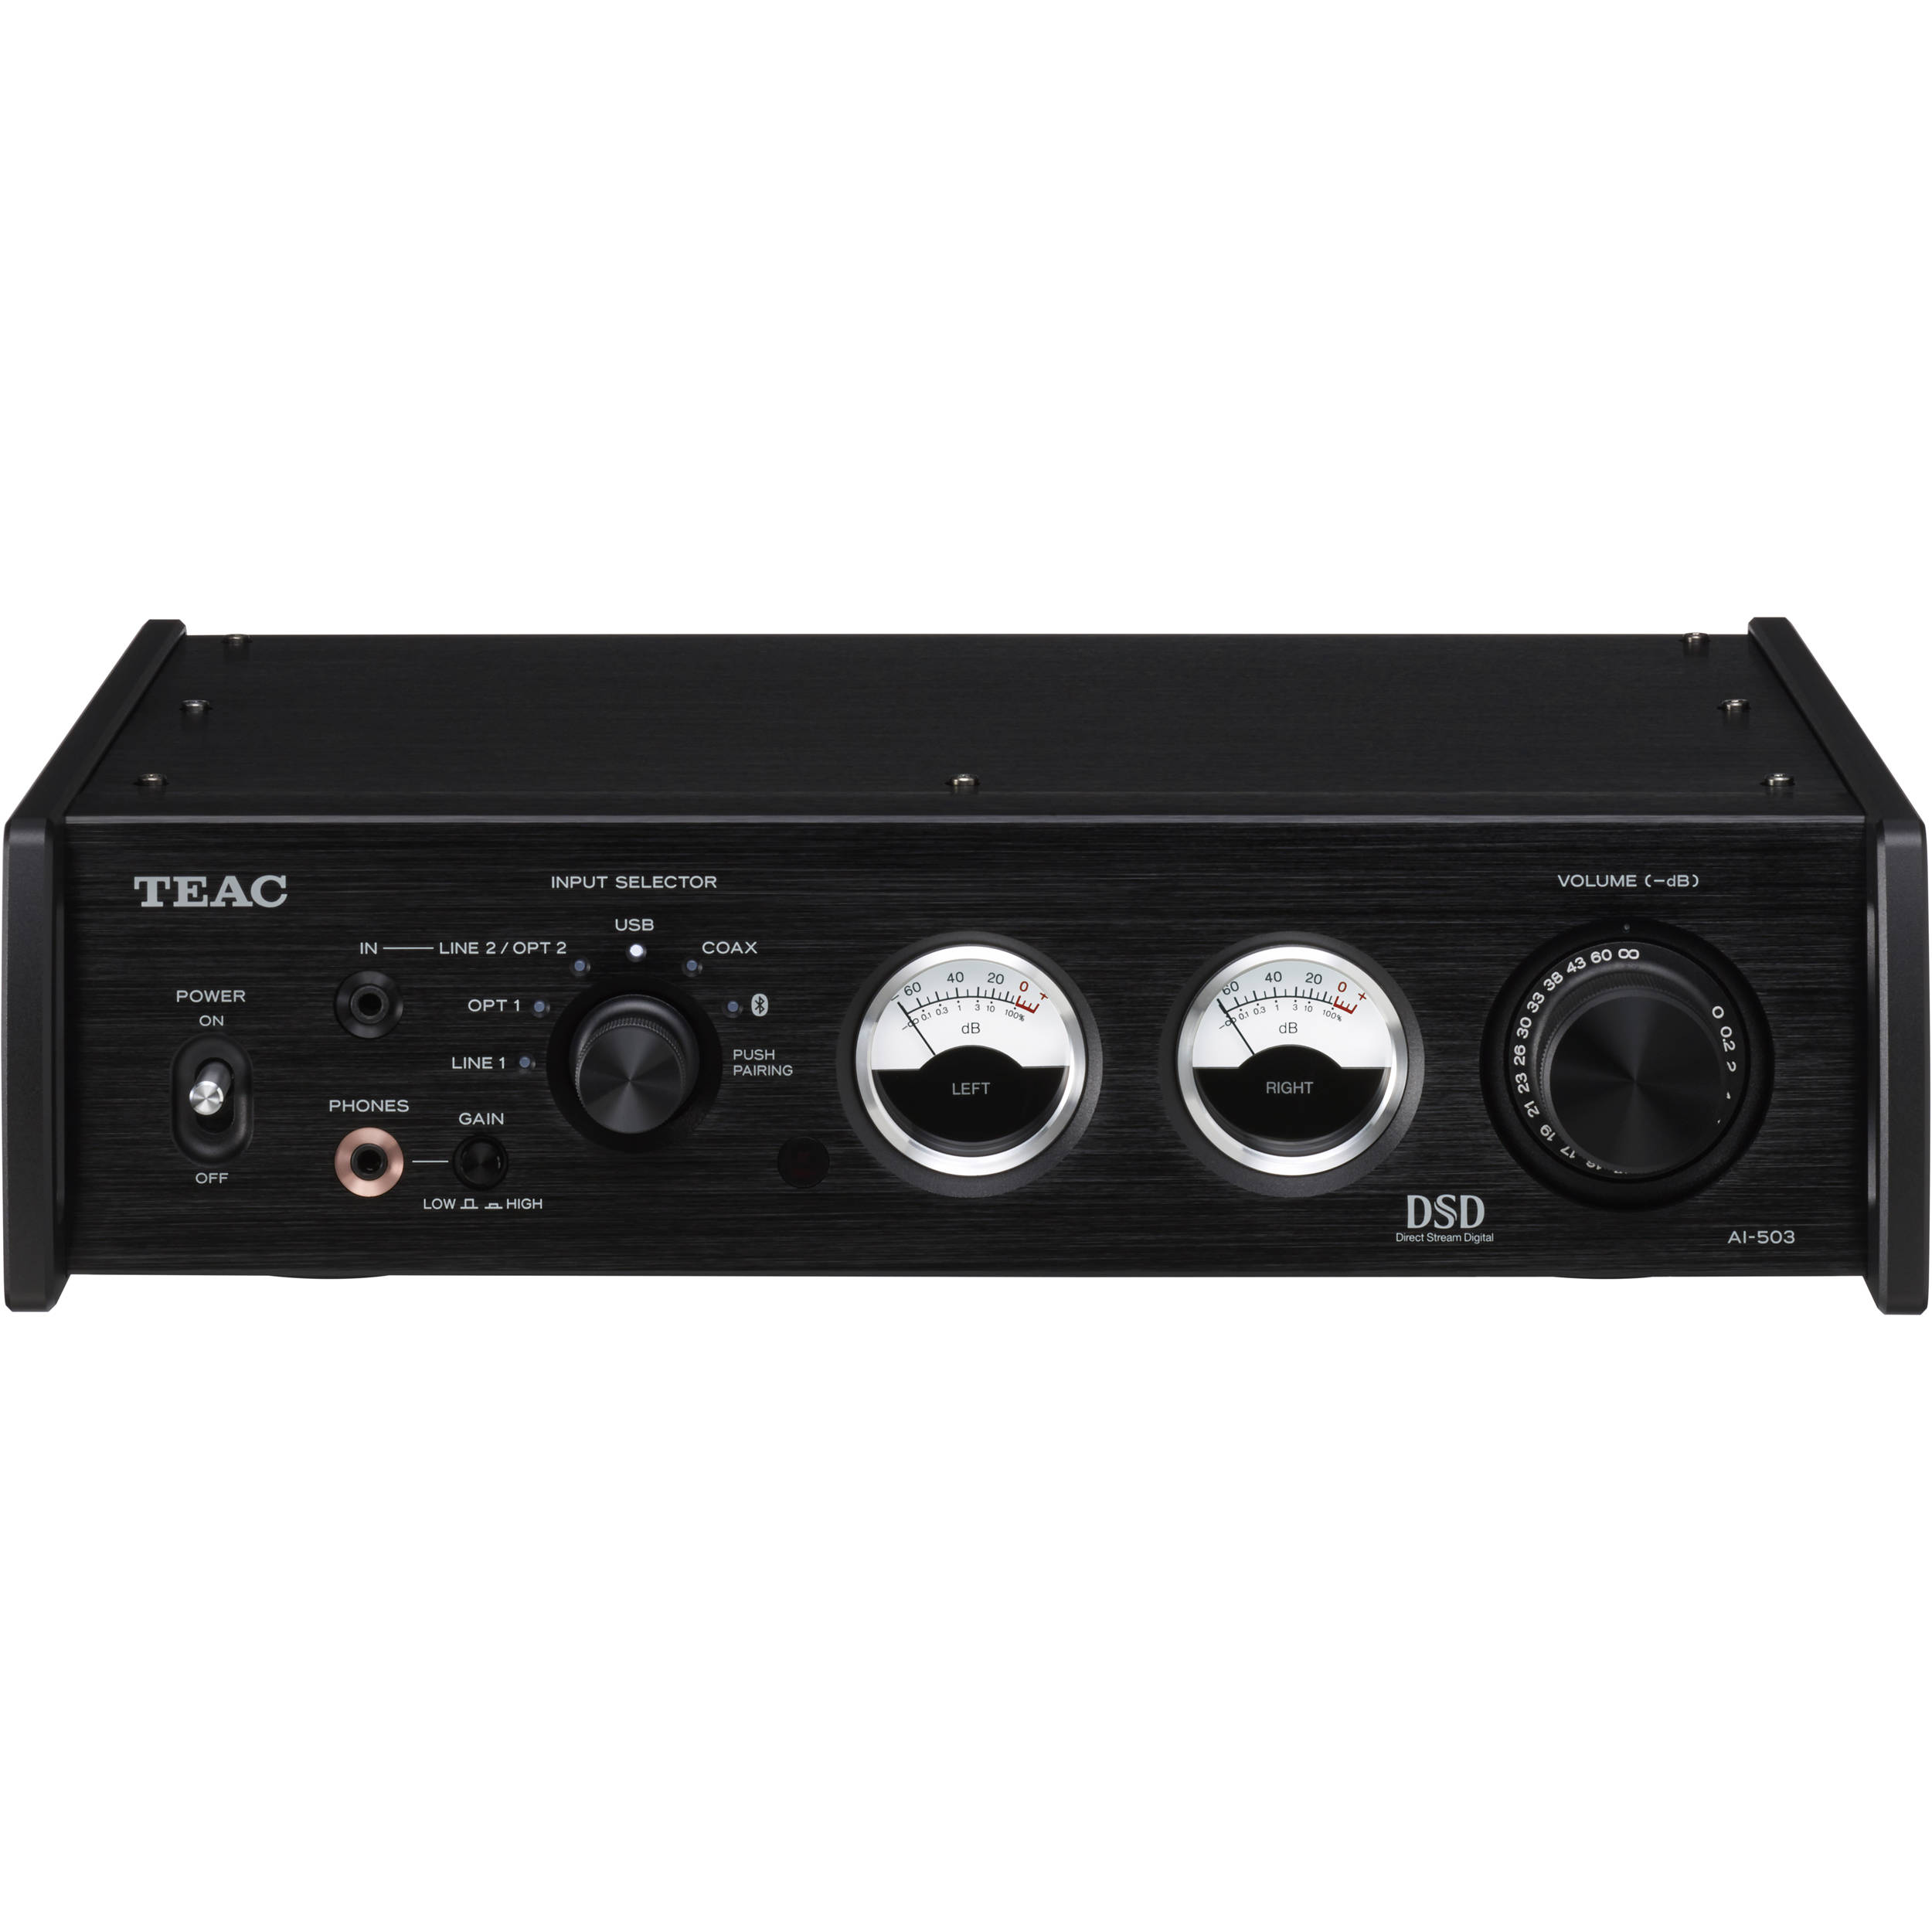 Teac AI-503 Stereo 60W Integrated Amplifier (Black)